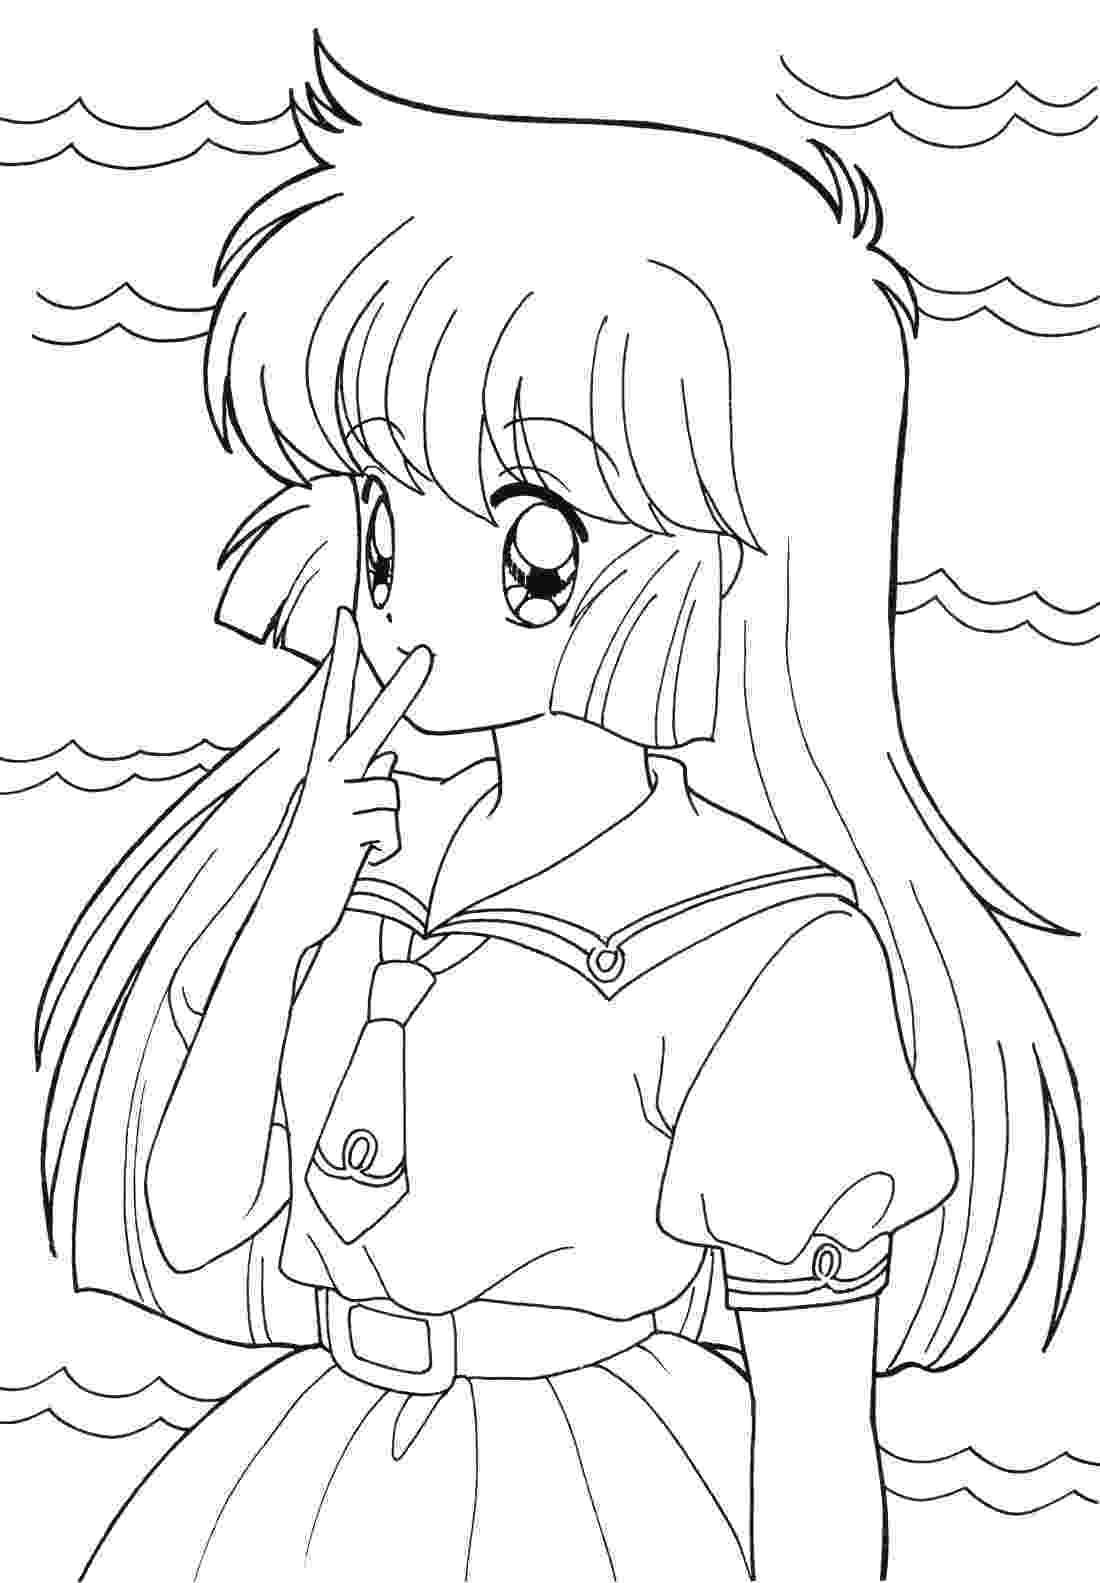 anime coloring anime coloring pages best coloring pages for kids anime coloring